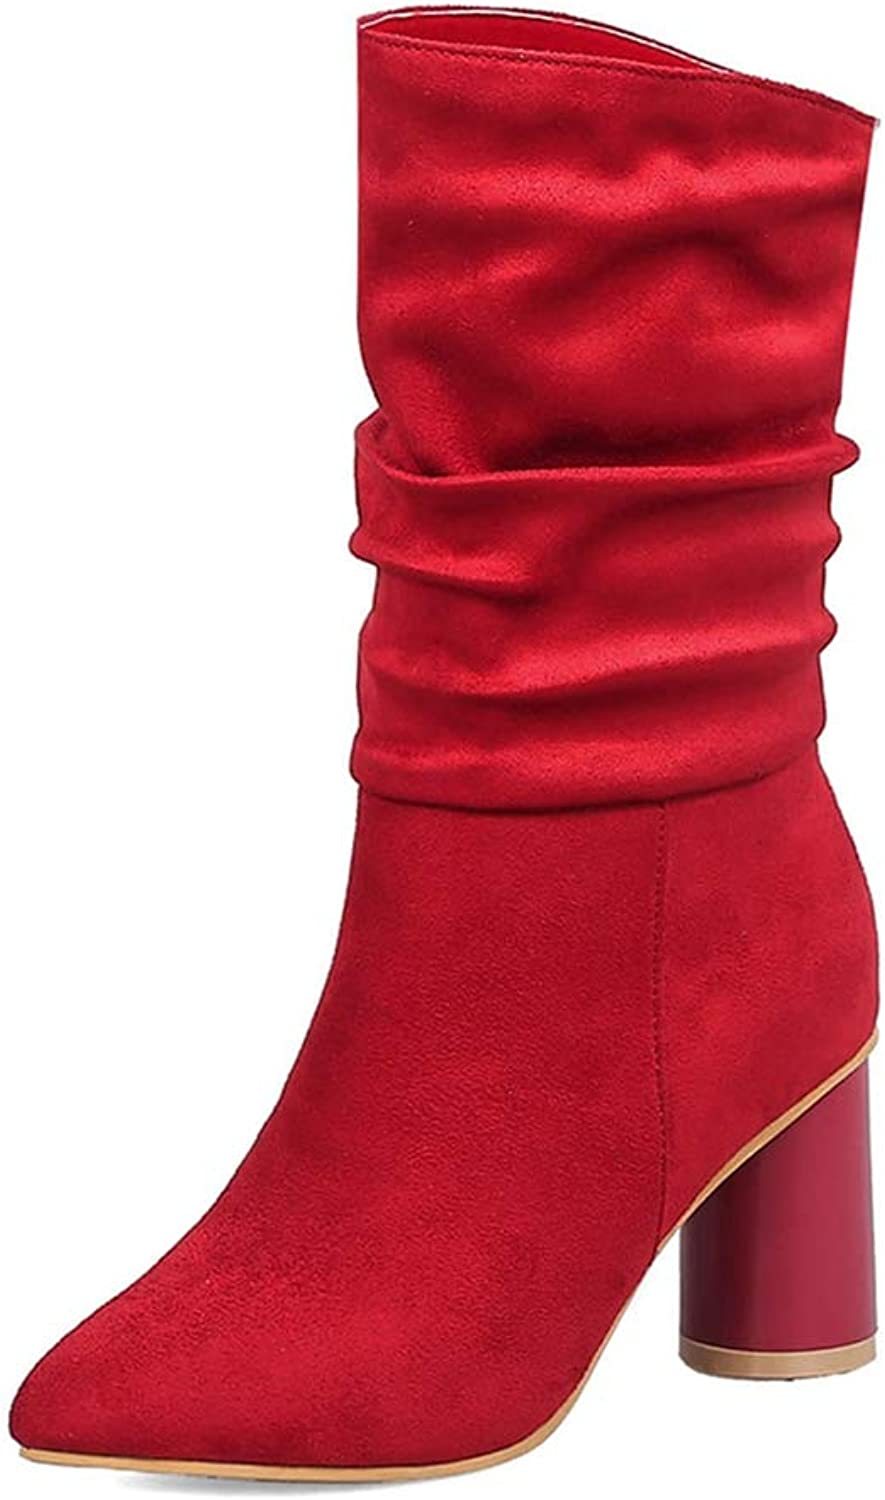 ASO-SLING Woman Fashion Boots Dropship Pointed Toe High Heels Mid Calf Warm Winter shoes